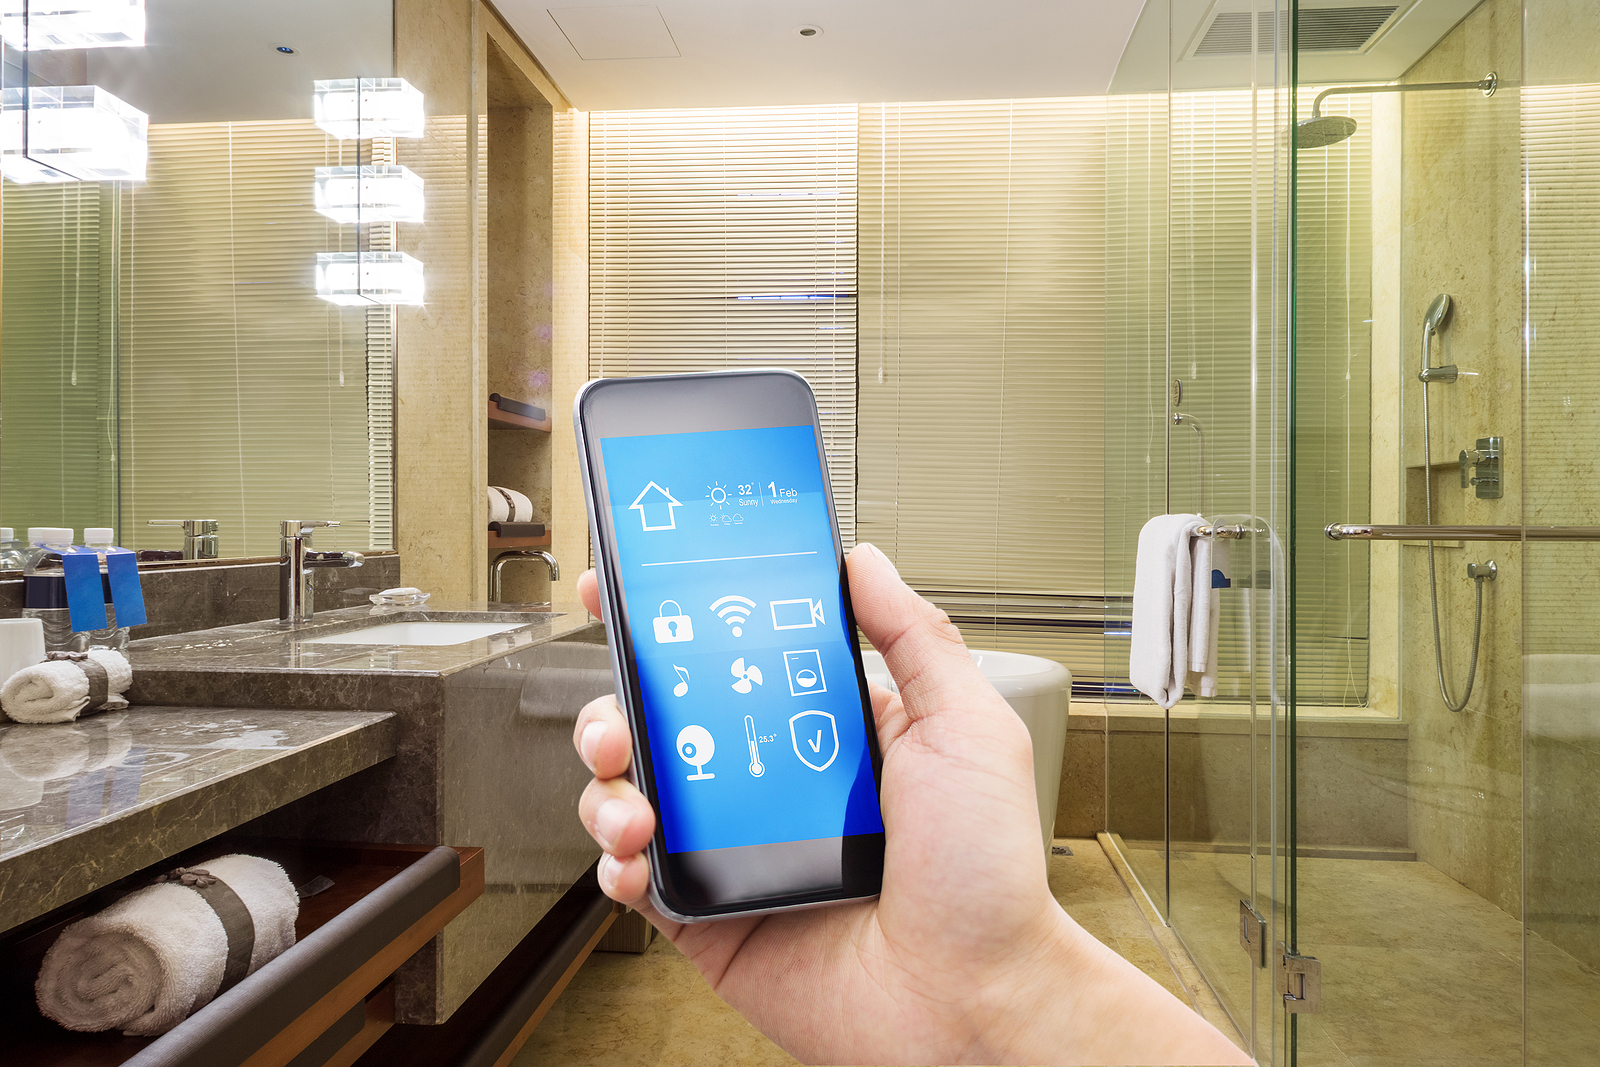 smart-lighting-technology-is-on-trend-with-homeowners